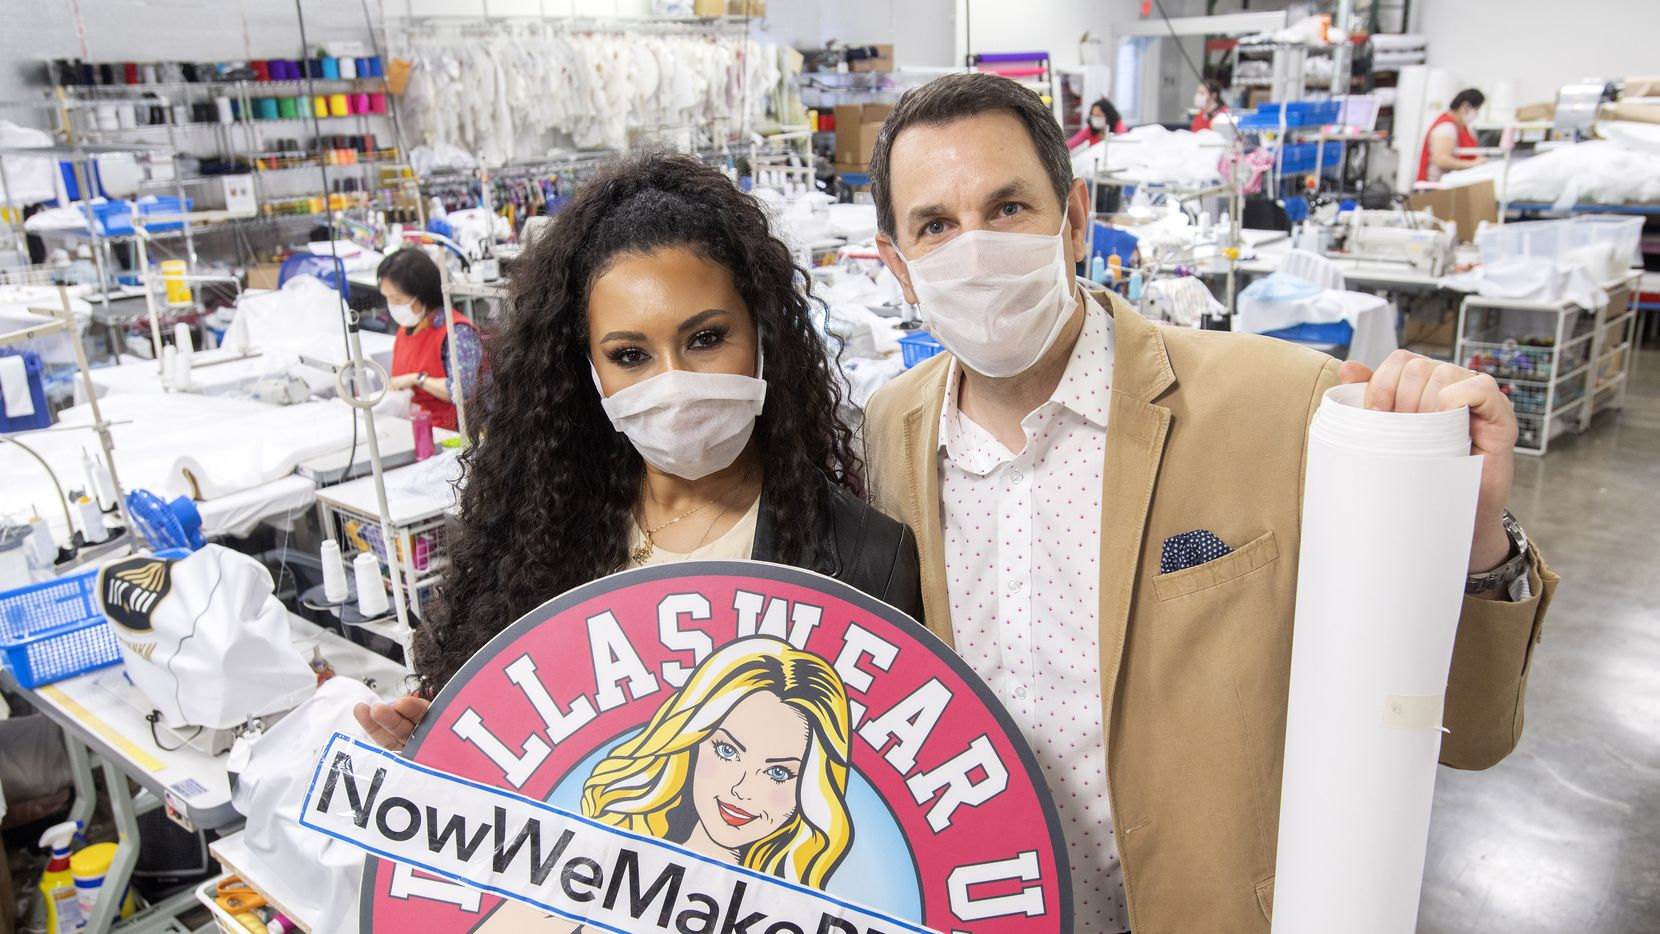 Terra Saunders, former Dallas Cowboys cheerleader and creative director of Dallaswear, and her husband, Paul, the company's chief executive, quickly pivoted from making uniforms for waitresses and professional cheerleaders to making protective equipment for health care workers and others on the front lines of the pandemic.